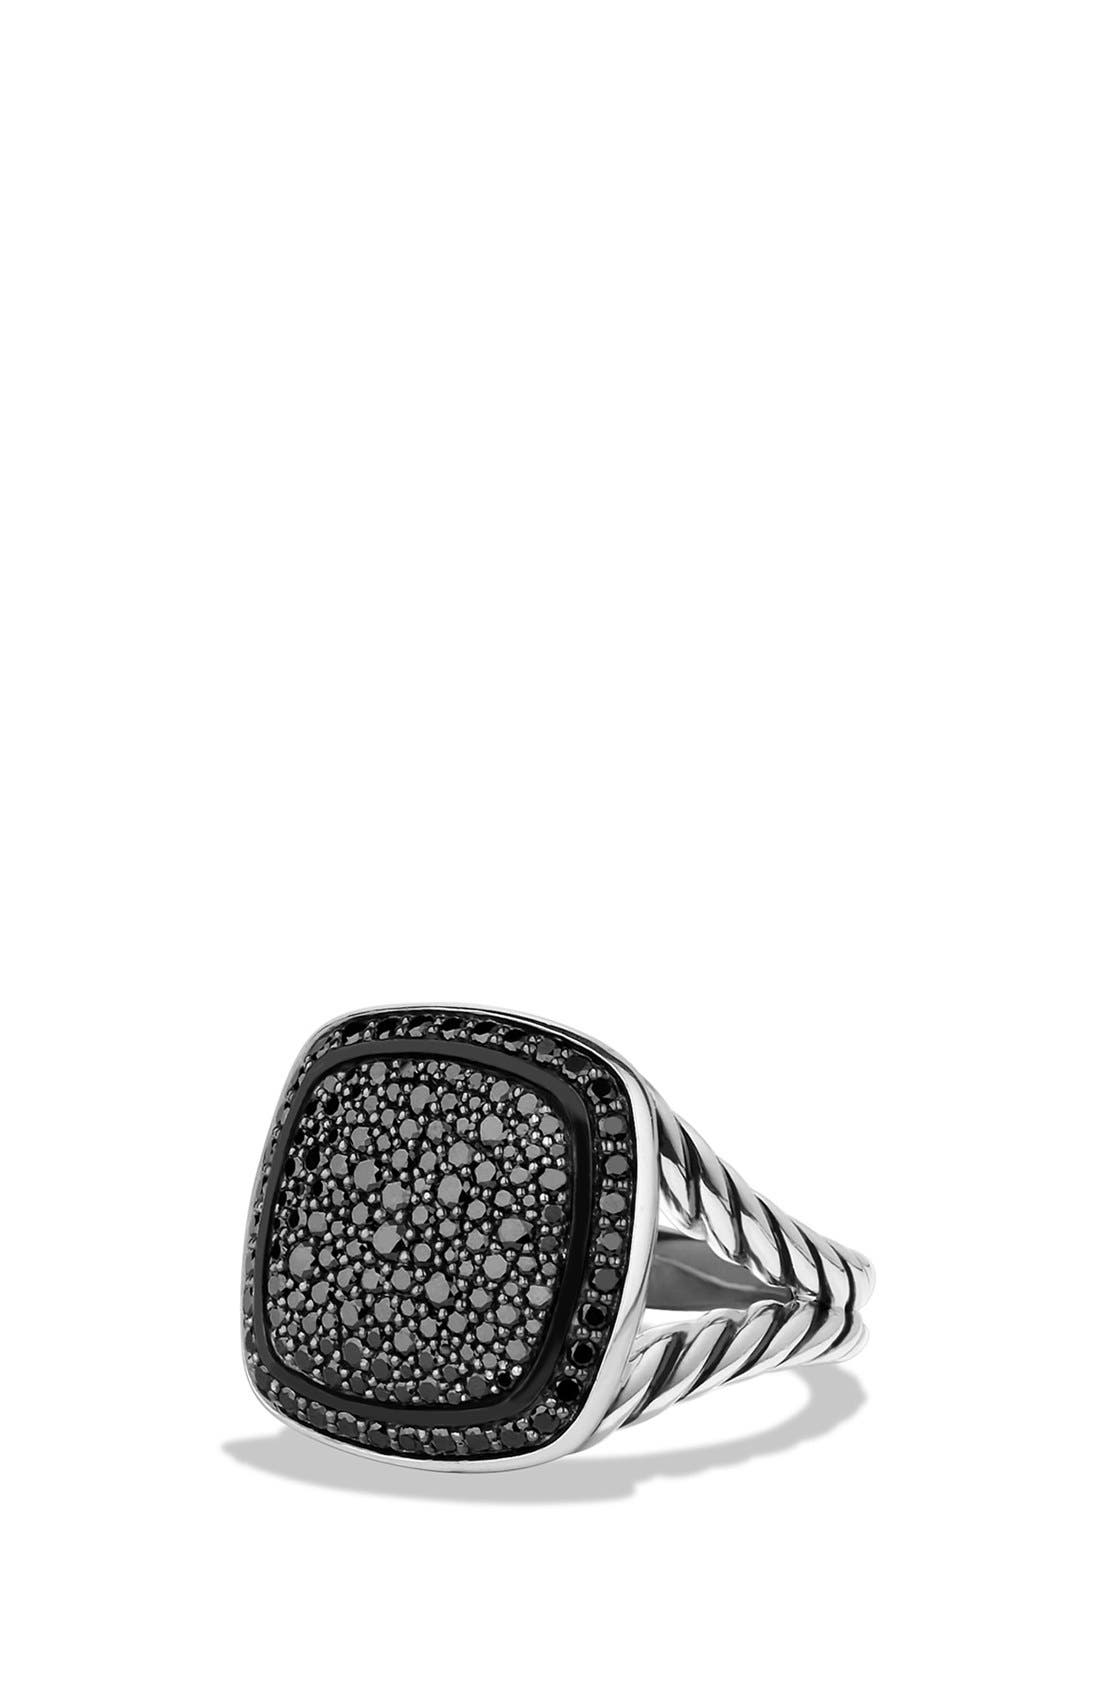 'Albion' Ring with Diamonds,                             Main thumbnail 1, color,                             Black Diamond